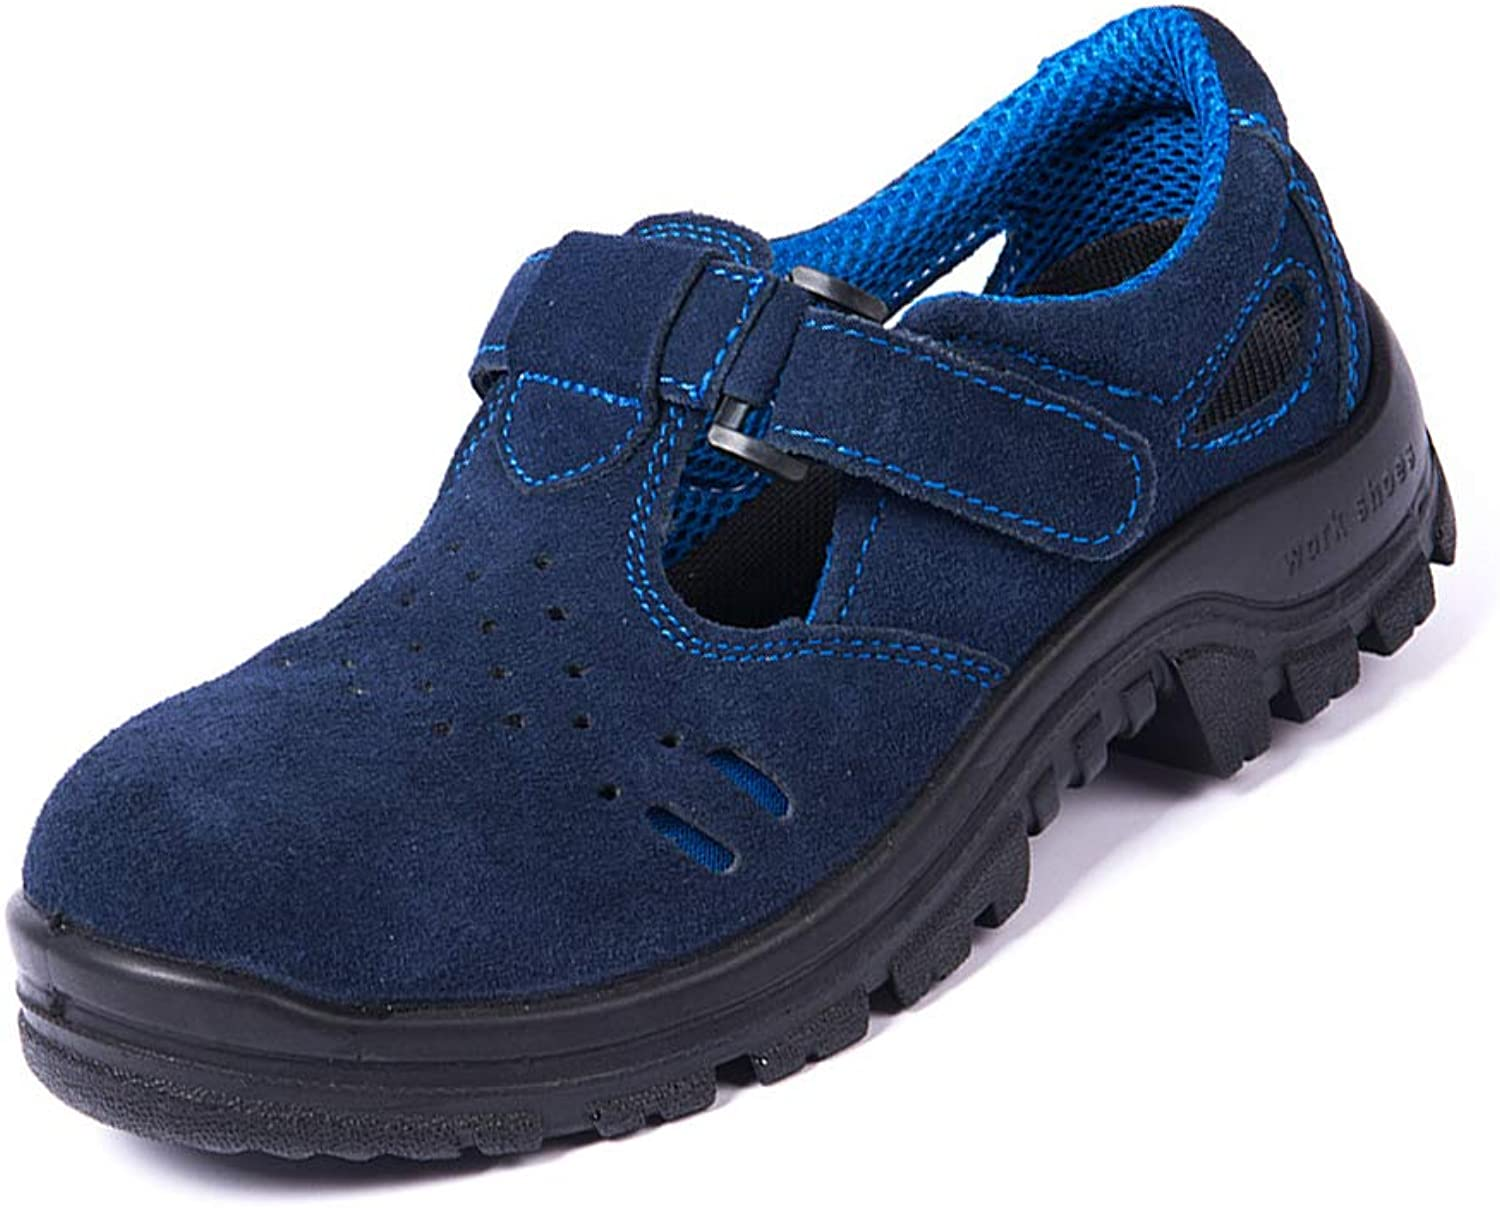 Steel Toe shoes Men Women, Work Safety shoes, Comfortable Anti-Smashing Puncture Proof Industrial Construction shoes,6